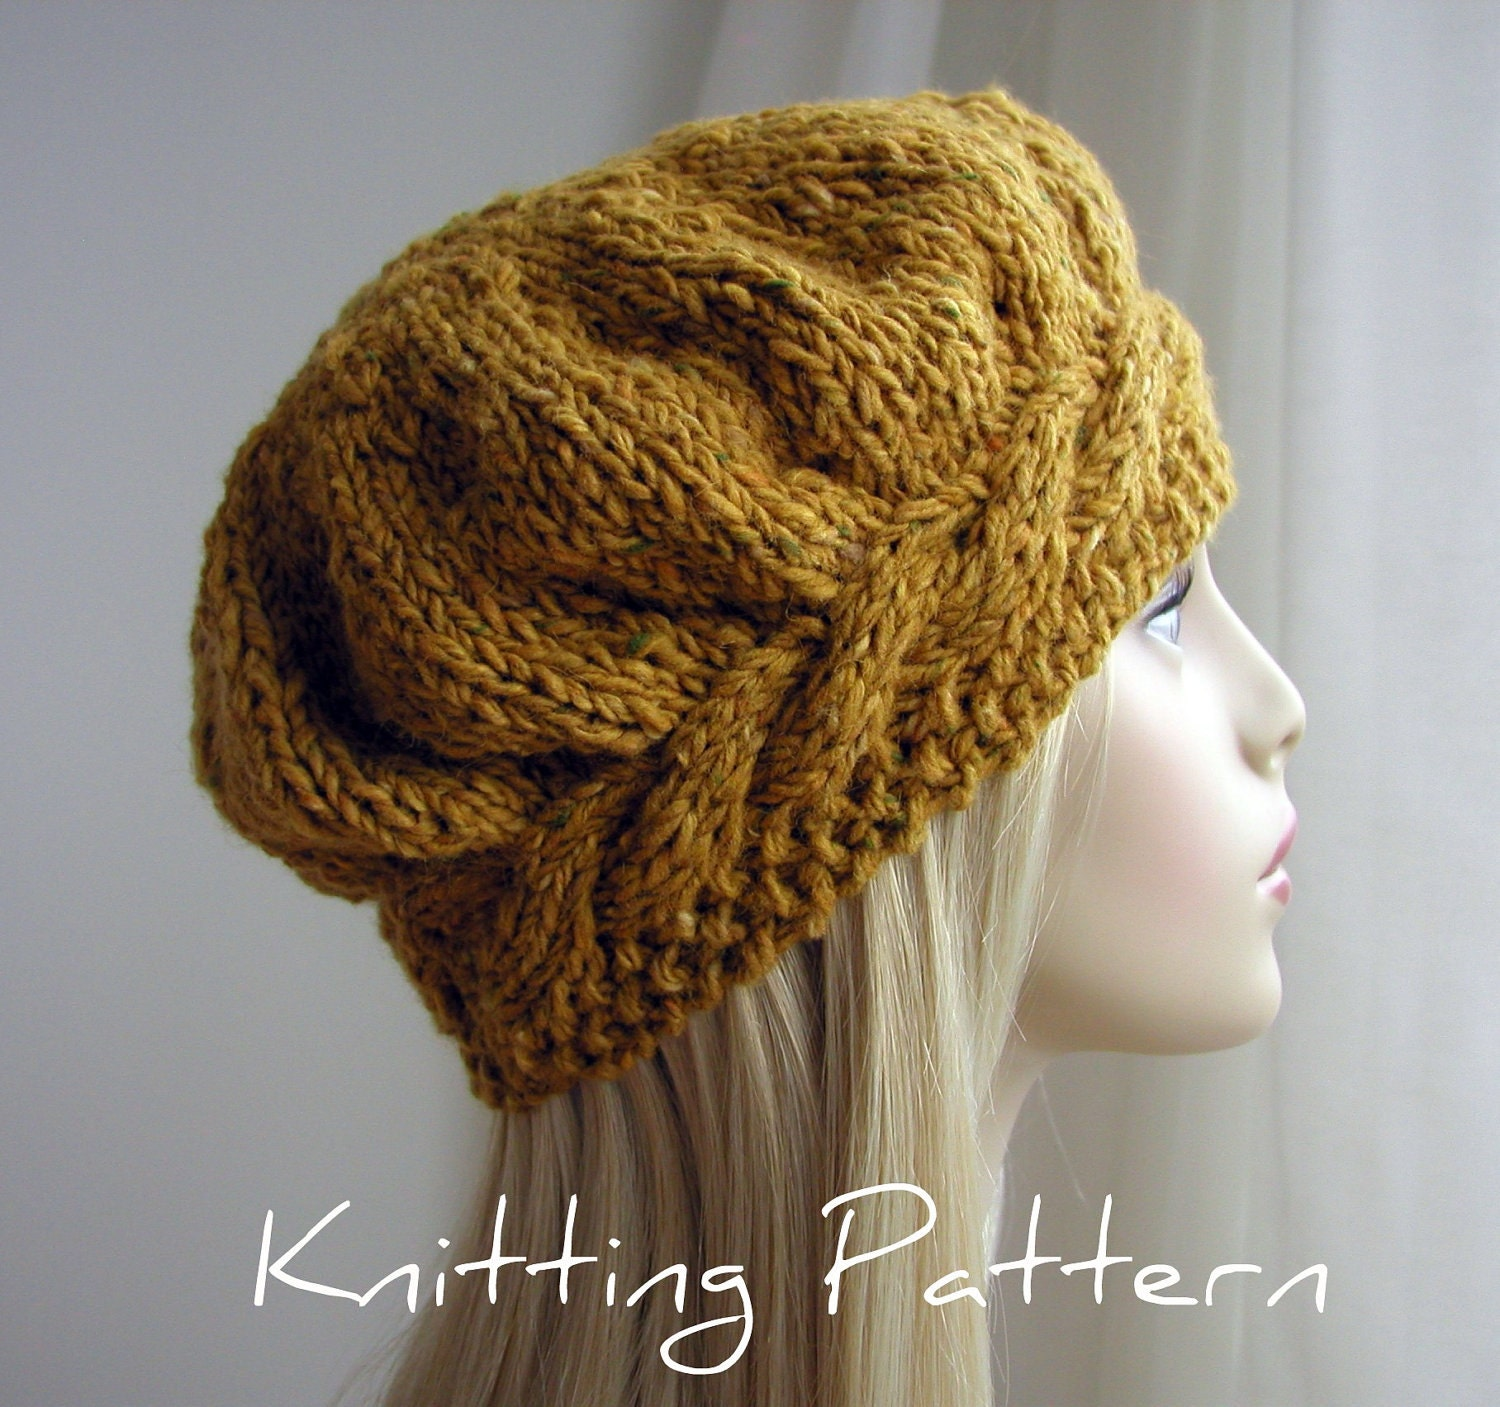 Beret Knit Pattern Free Easy : Free Knitted Beret Patterns   Catalog of Patterns